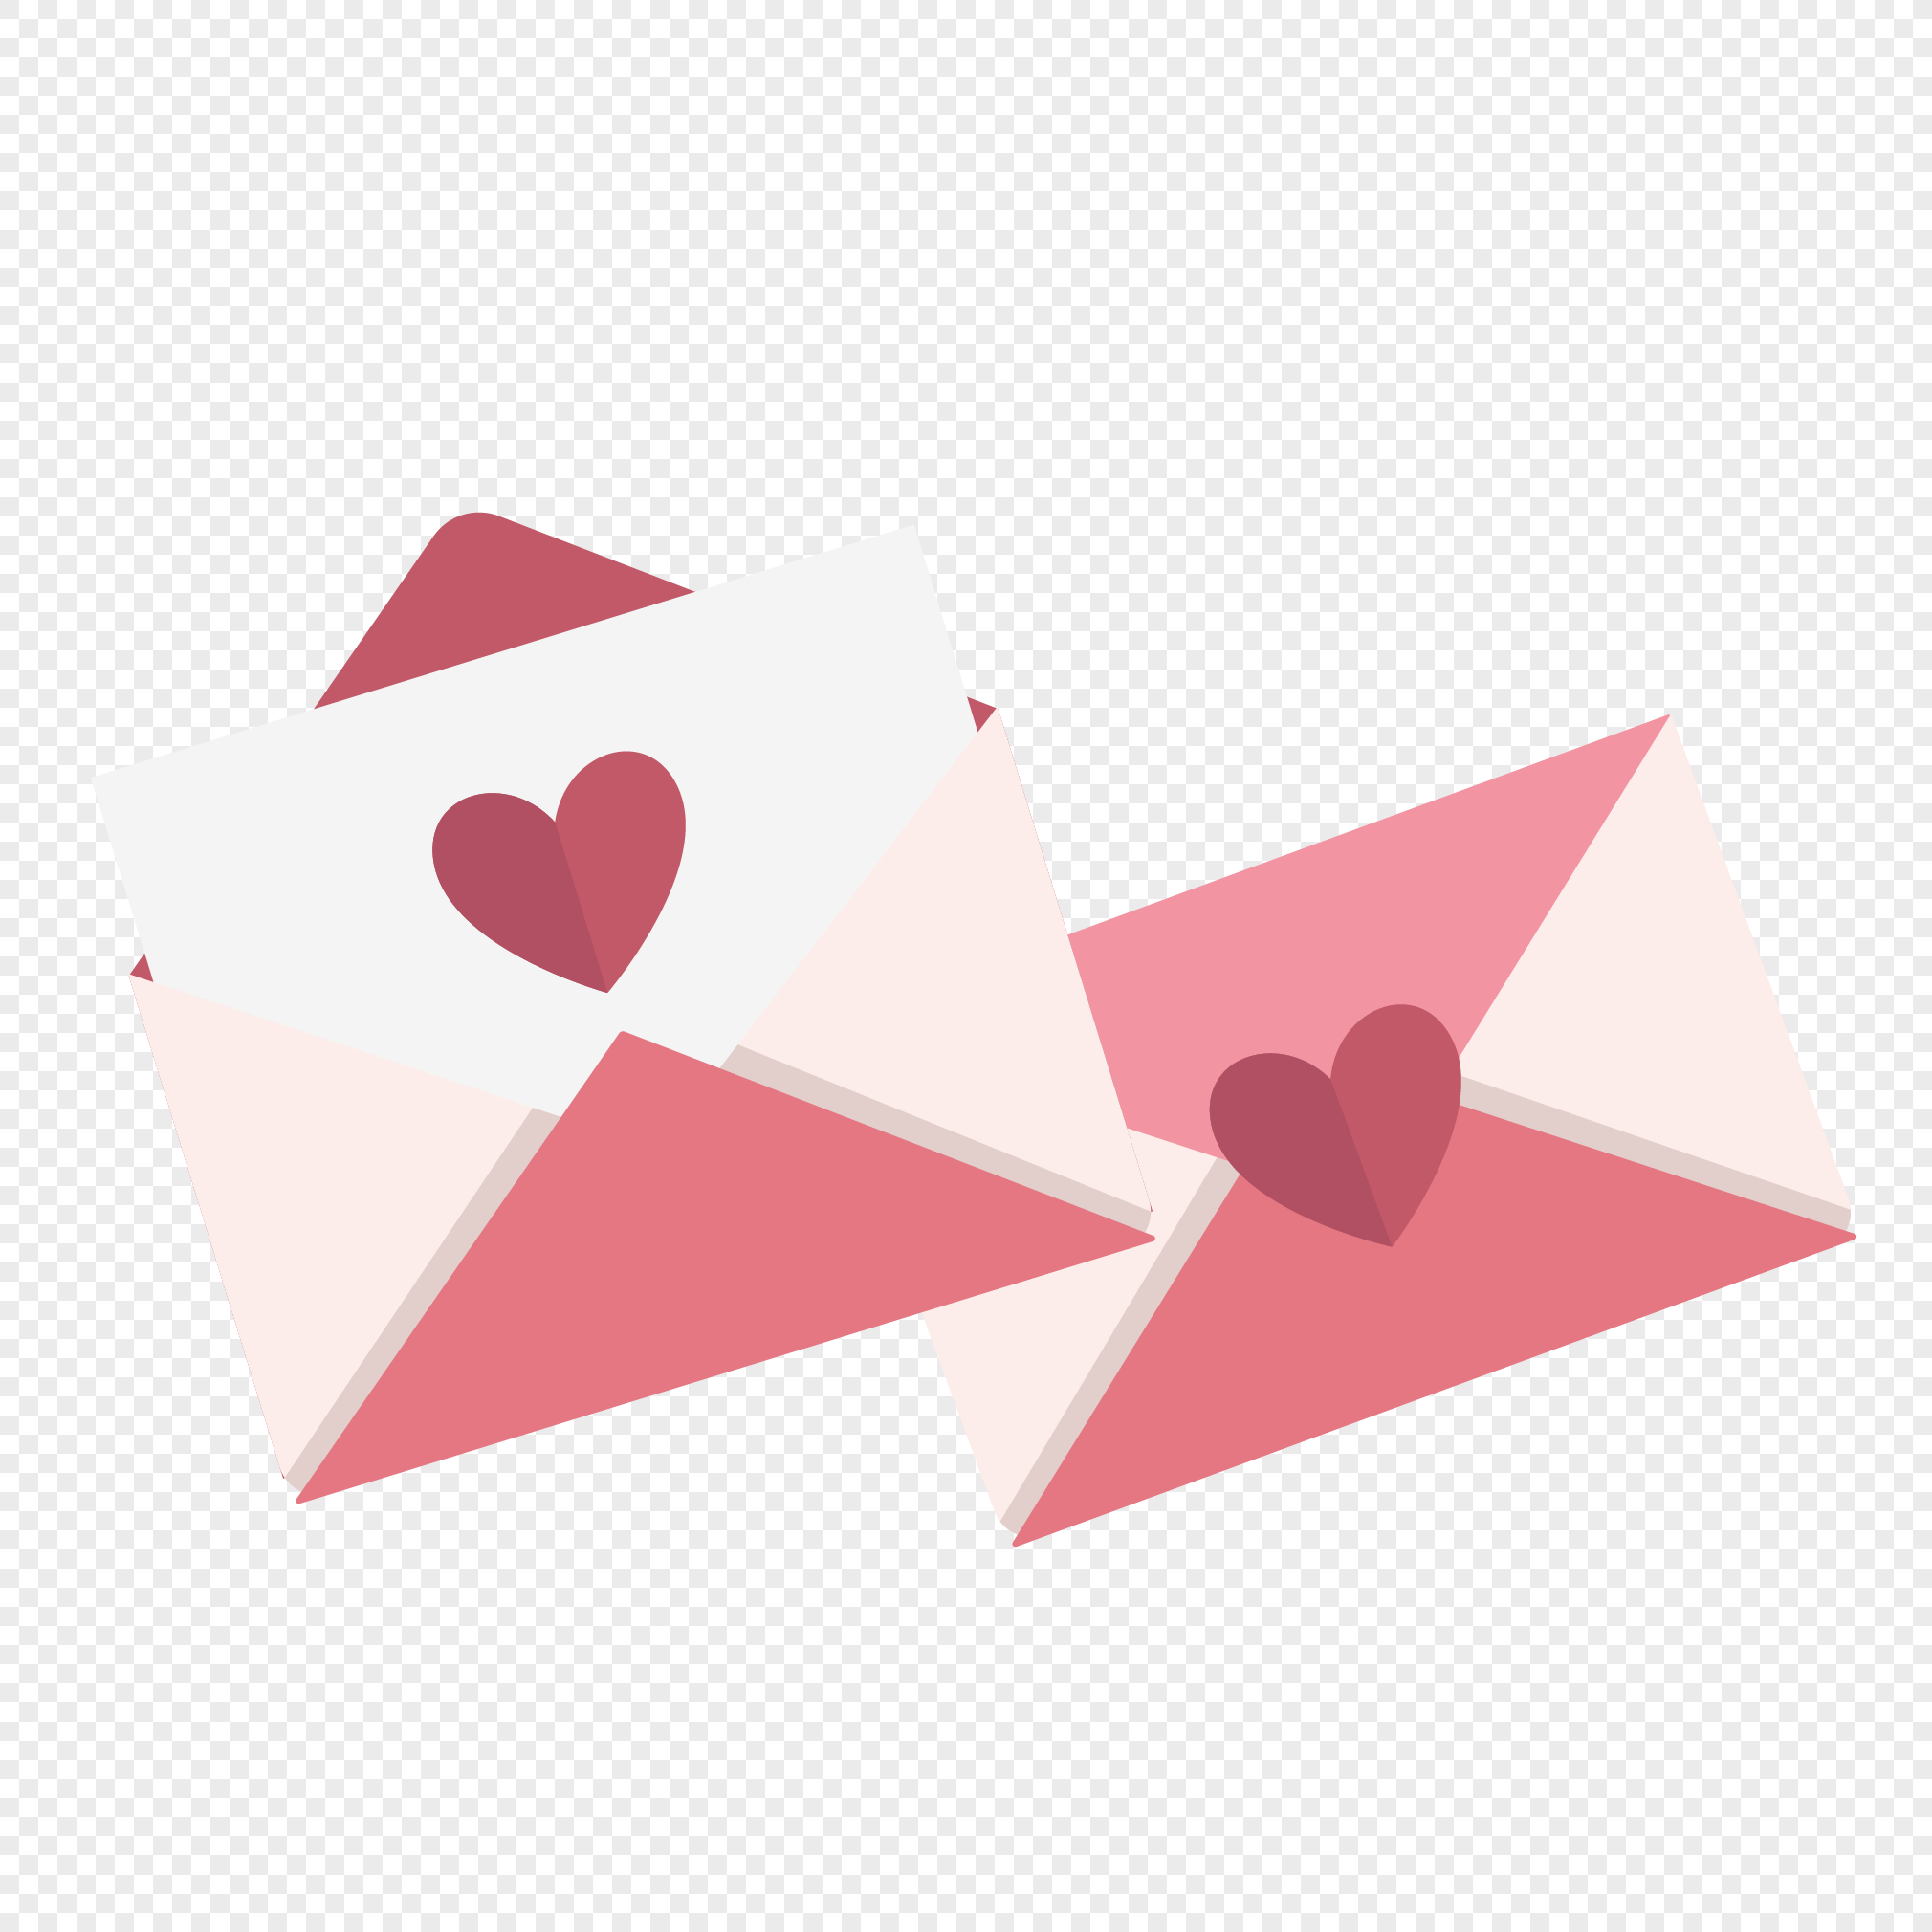 A Wedding Letter Png Image Picture Free Download 400737918 Lovepik Com